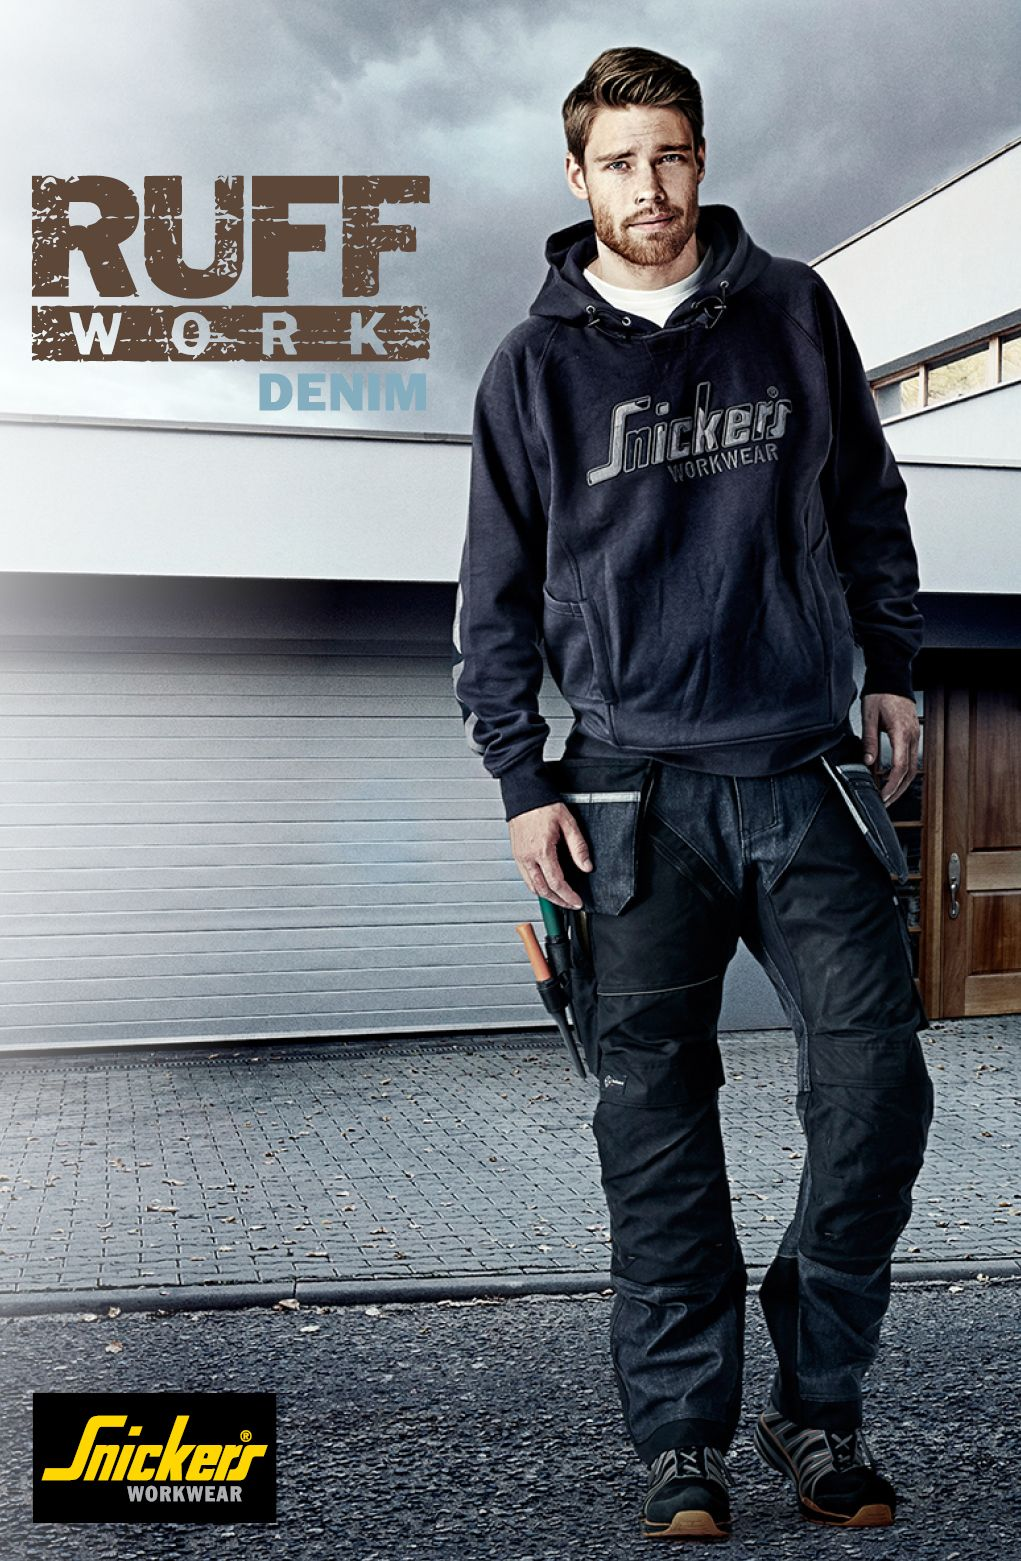 d8e29b6a1e4 Say hello to the #denim version of our new RuffWork work trousers! For a  modern look, wear these hardwearing work trousers featuring reinforced  design with ...